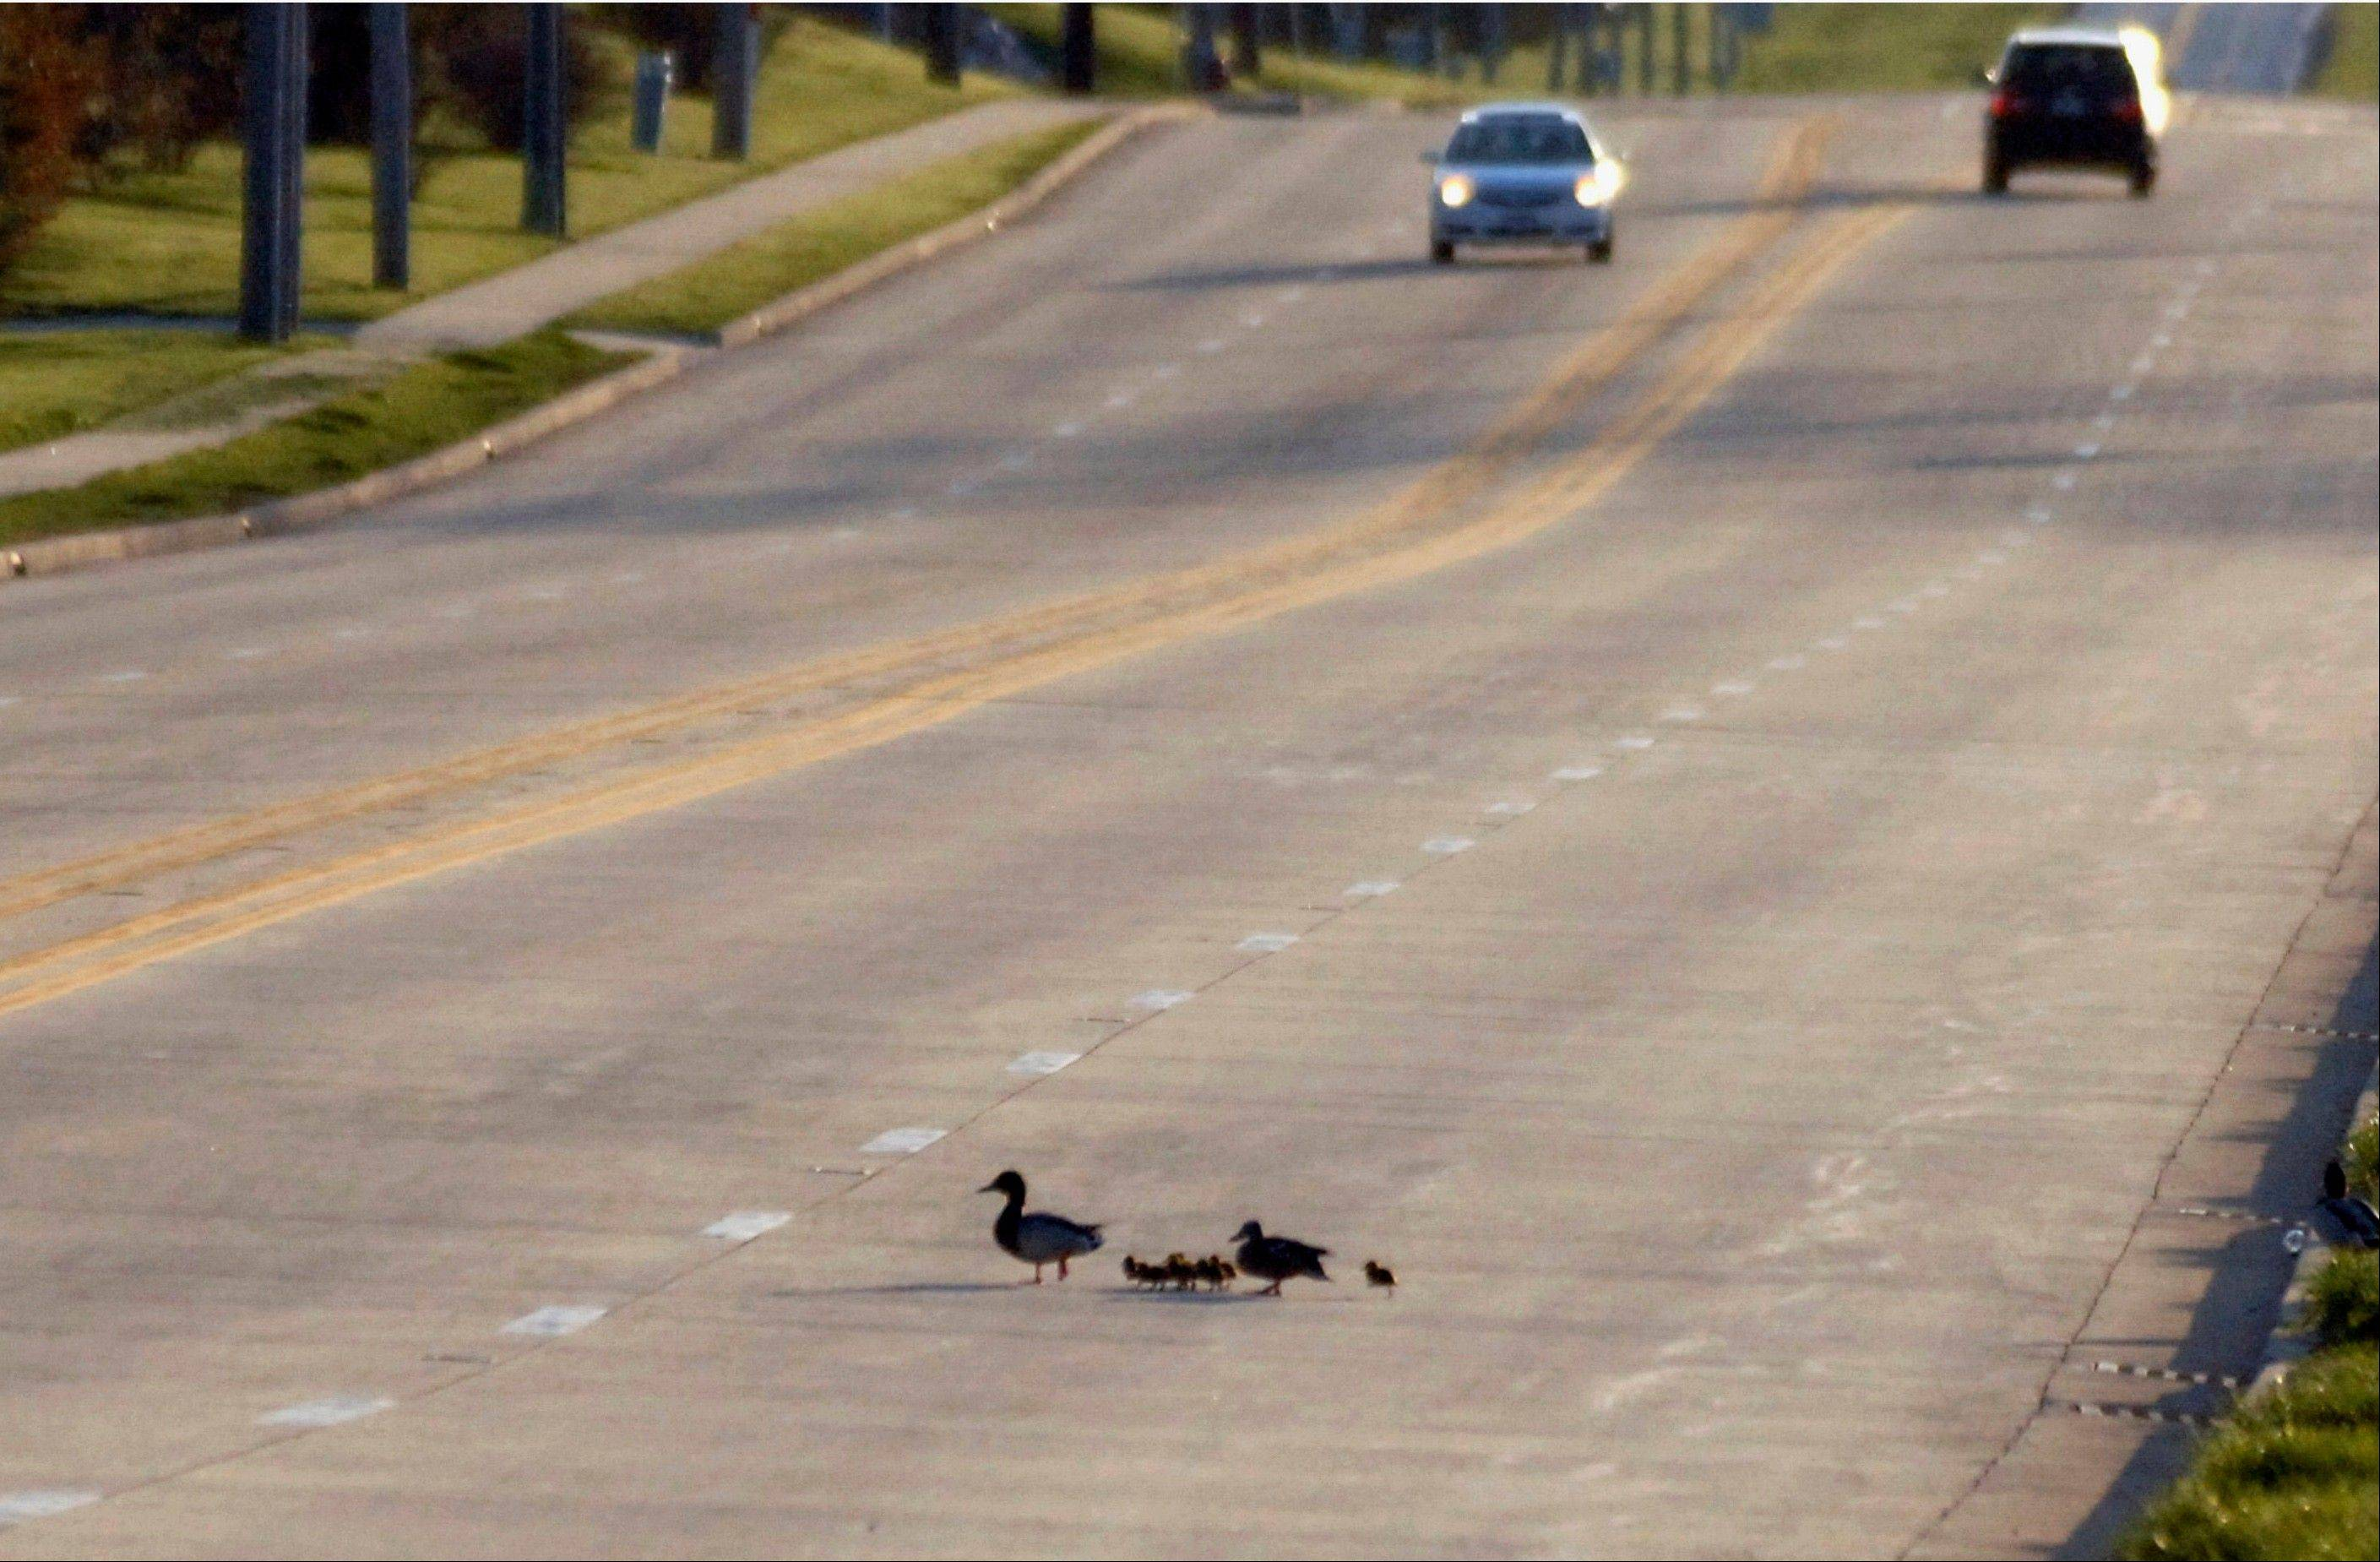 The family of ducks crosses a road after police officers rescued eight ducklings from a storm sewer in Normal.